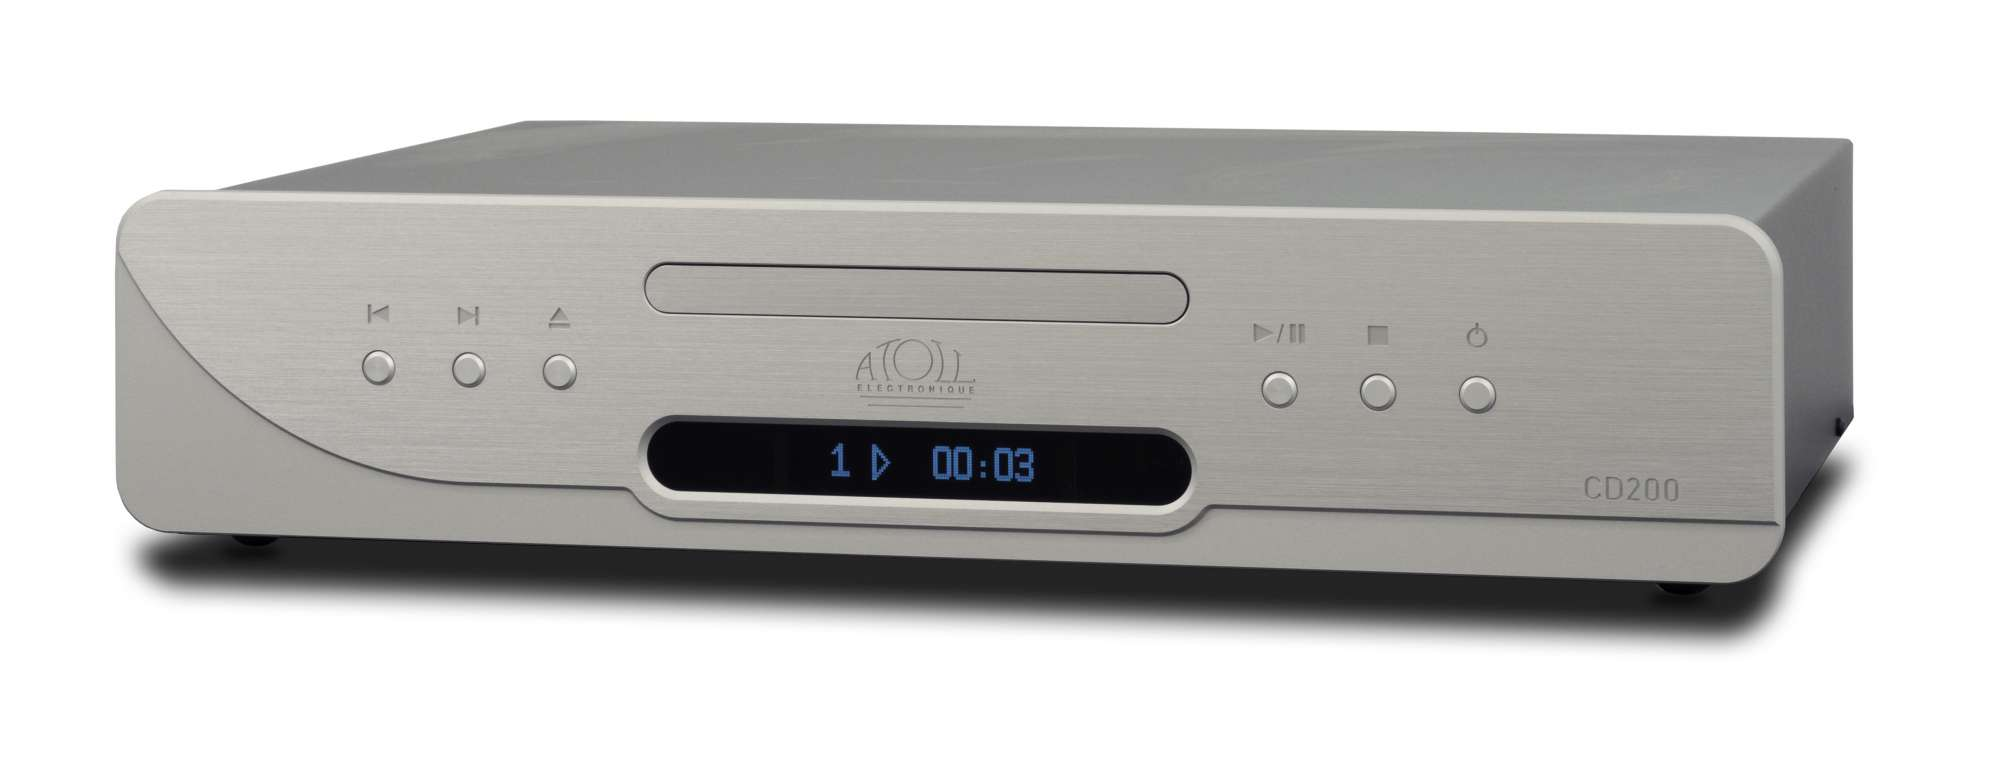 Atoll CD 200 Signature CD-Player silber